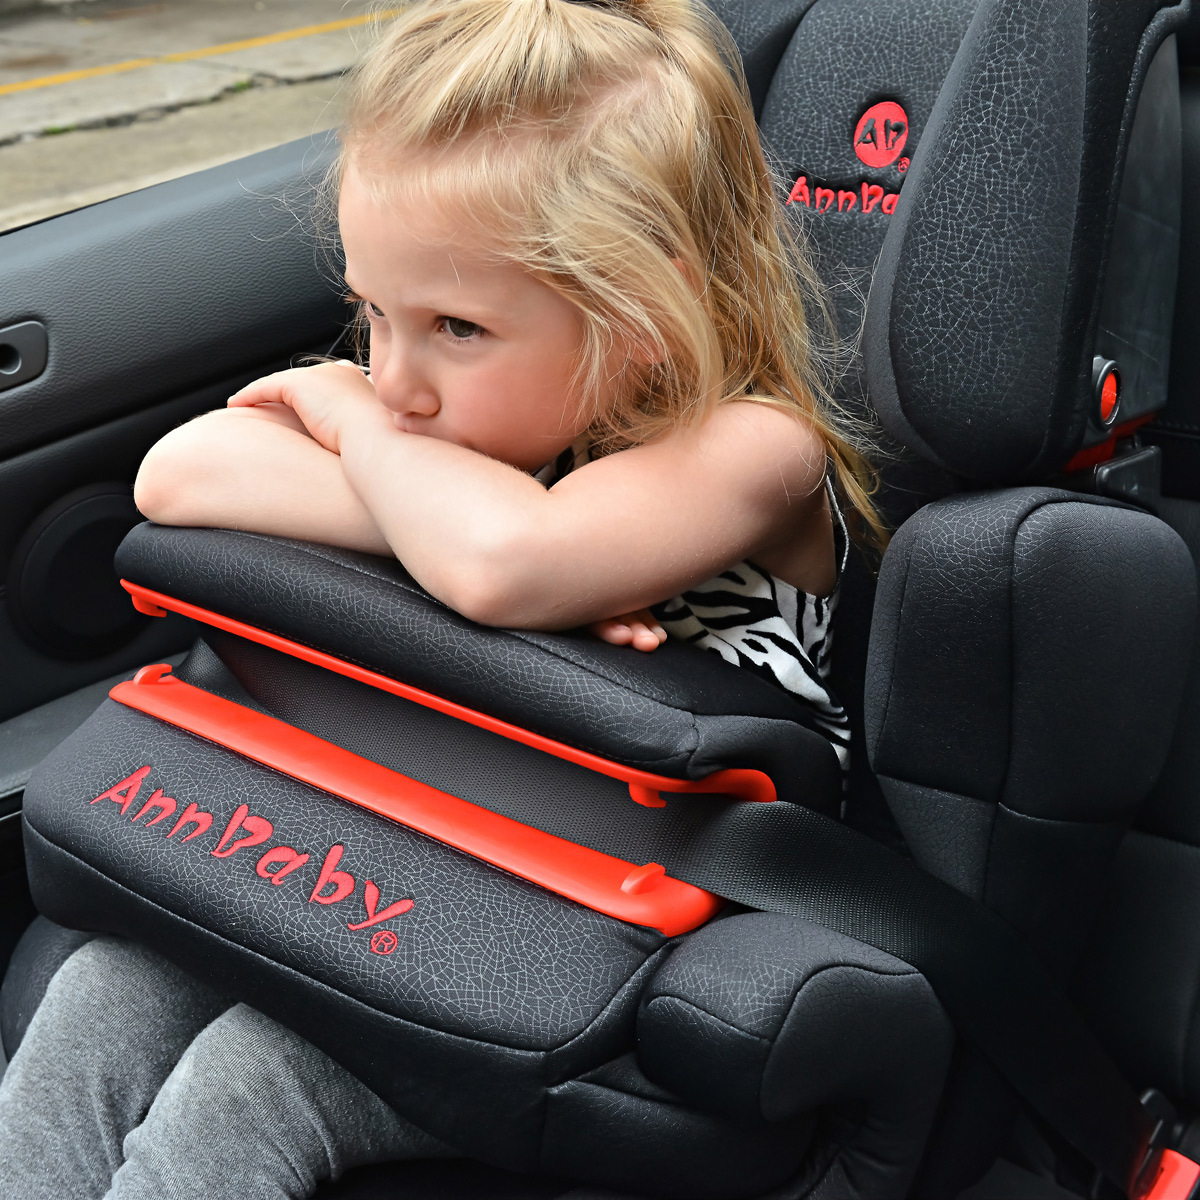 wholesale dropshipping children 39 s luxury car annbaby safety seat 9 months 12 year old auto. Black Bedroom Furniture Sets. Home Design Ideas